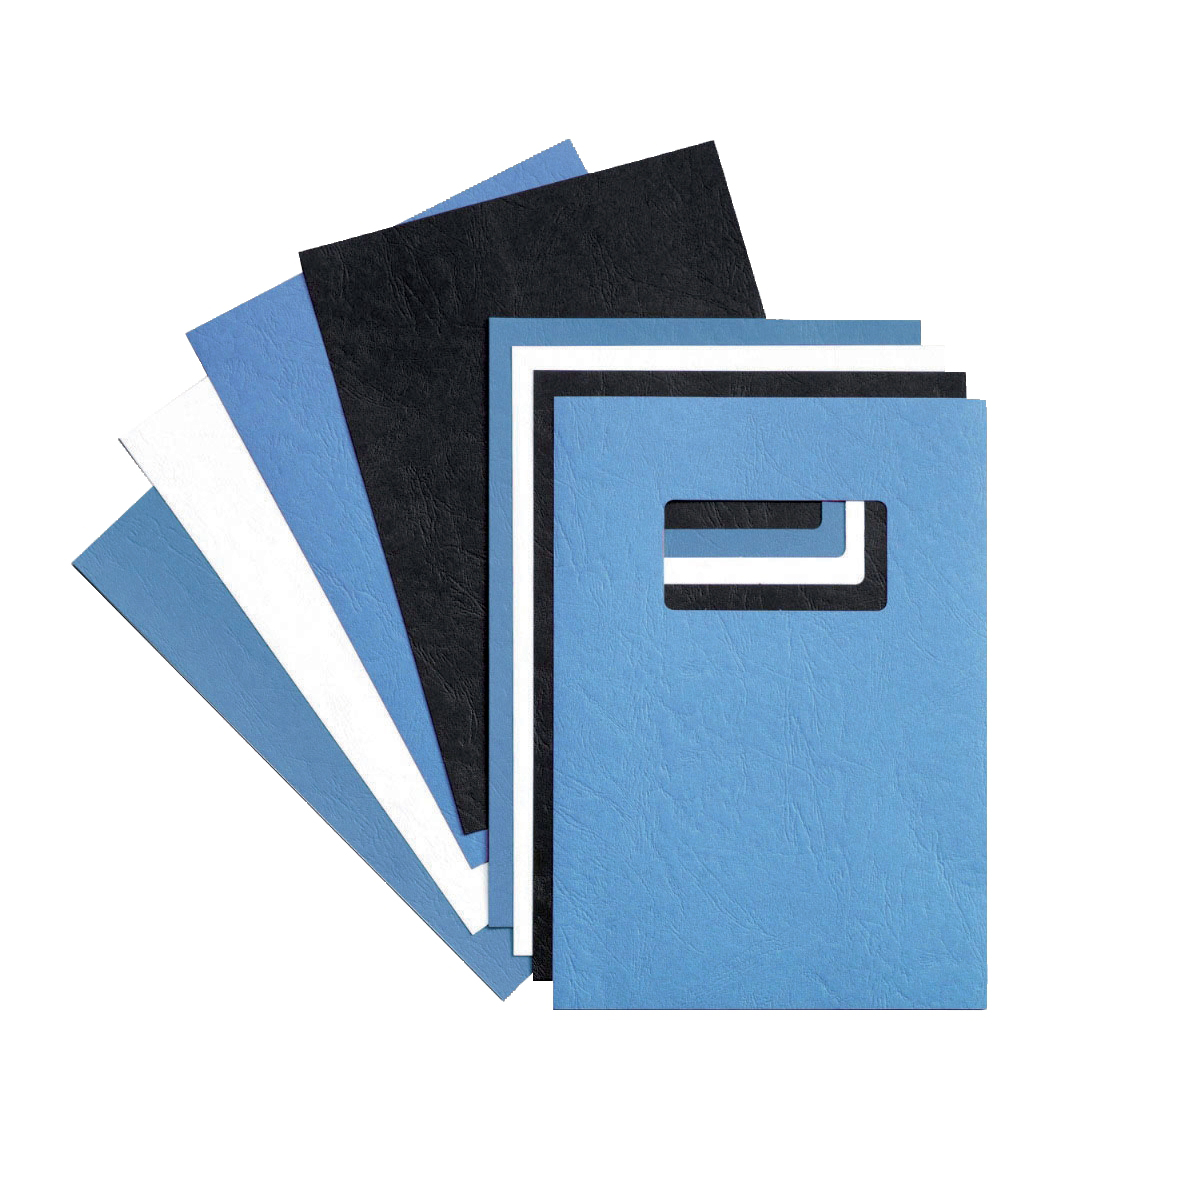 Cover Boards GBC Binding Covers Leatherboard Window 250gsm A4 Blue Ref 46735E [Pack 25x2]